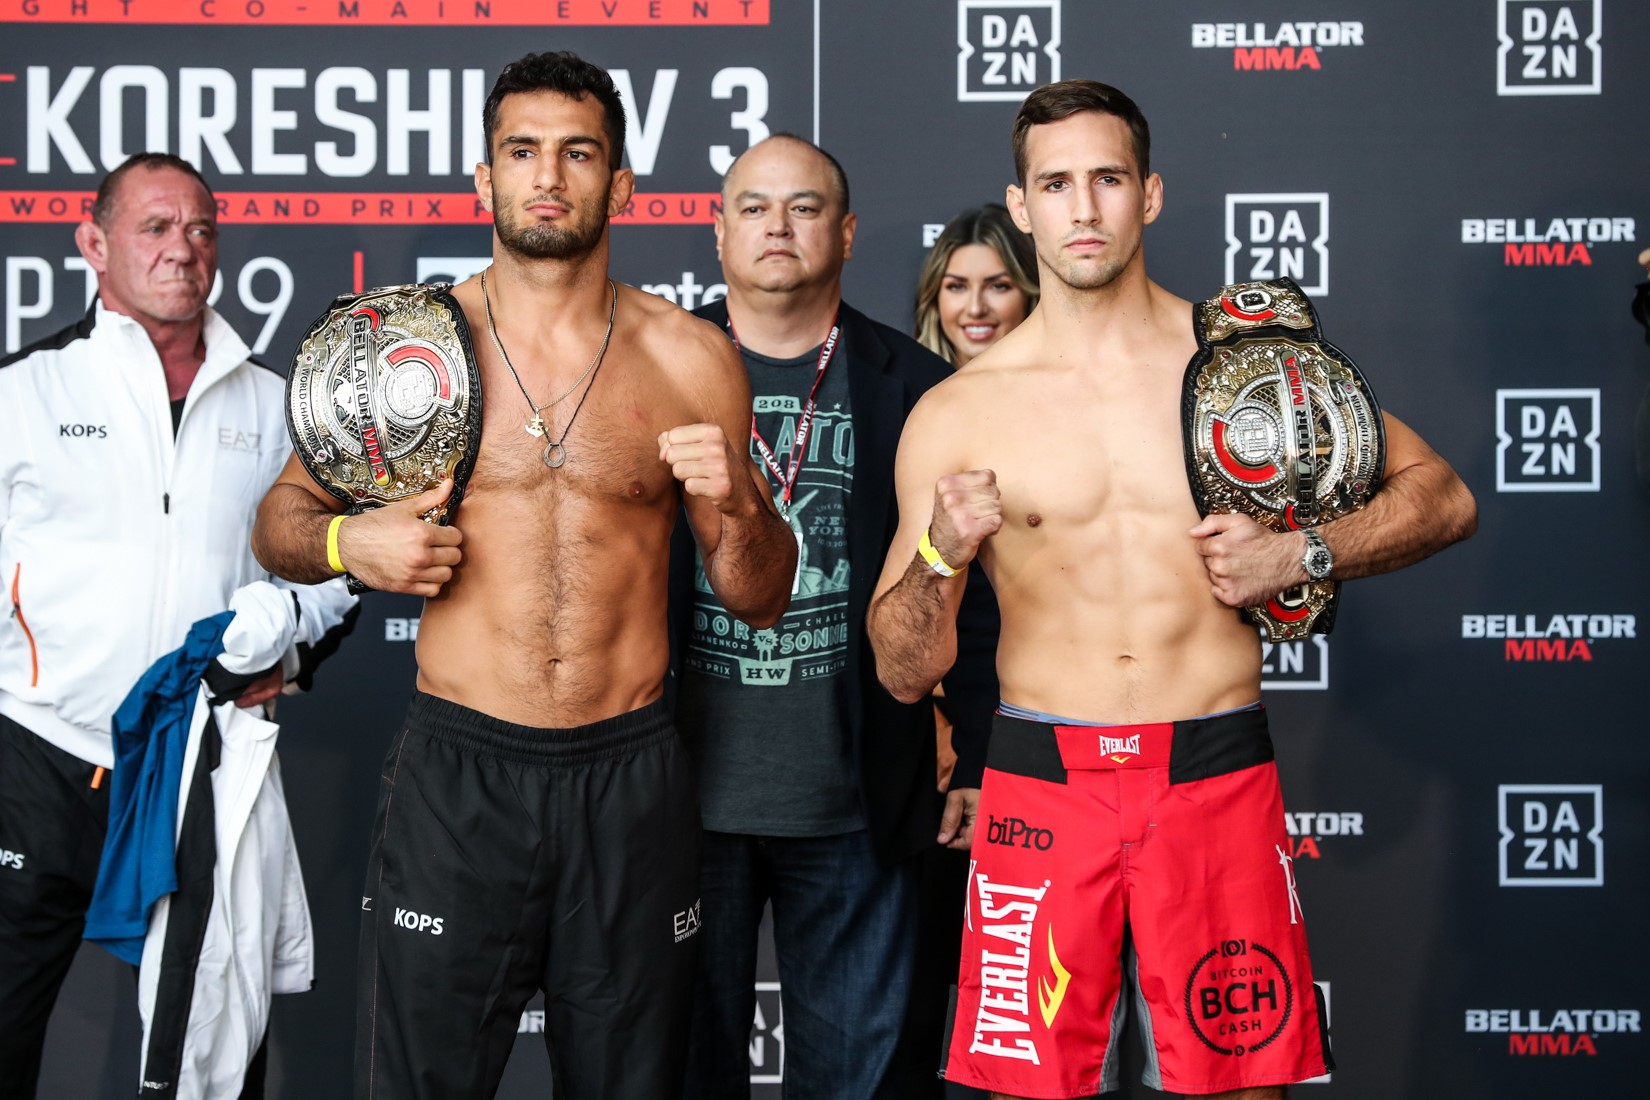 ellator 206: Mousasi vs. MacDonald Weigh-In Results & Photos